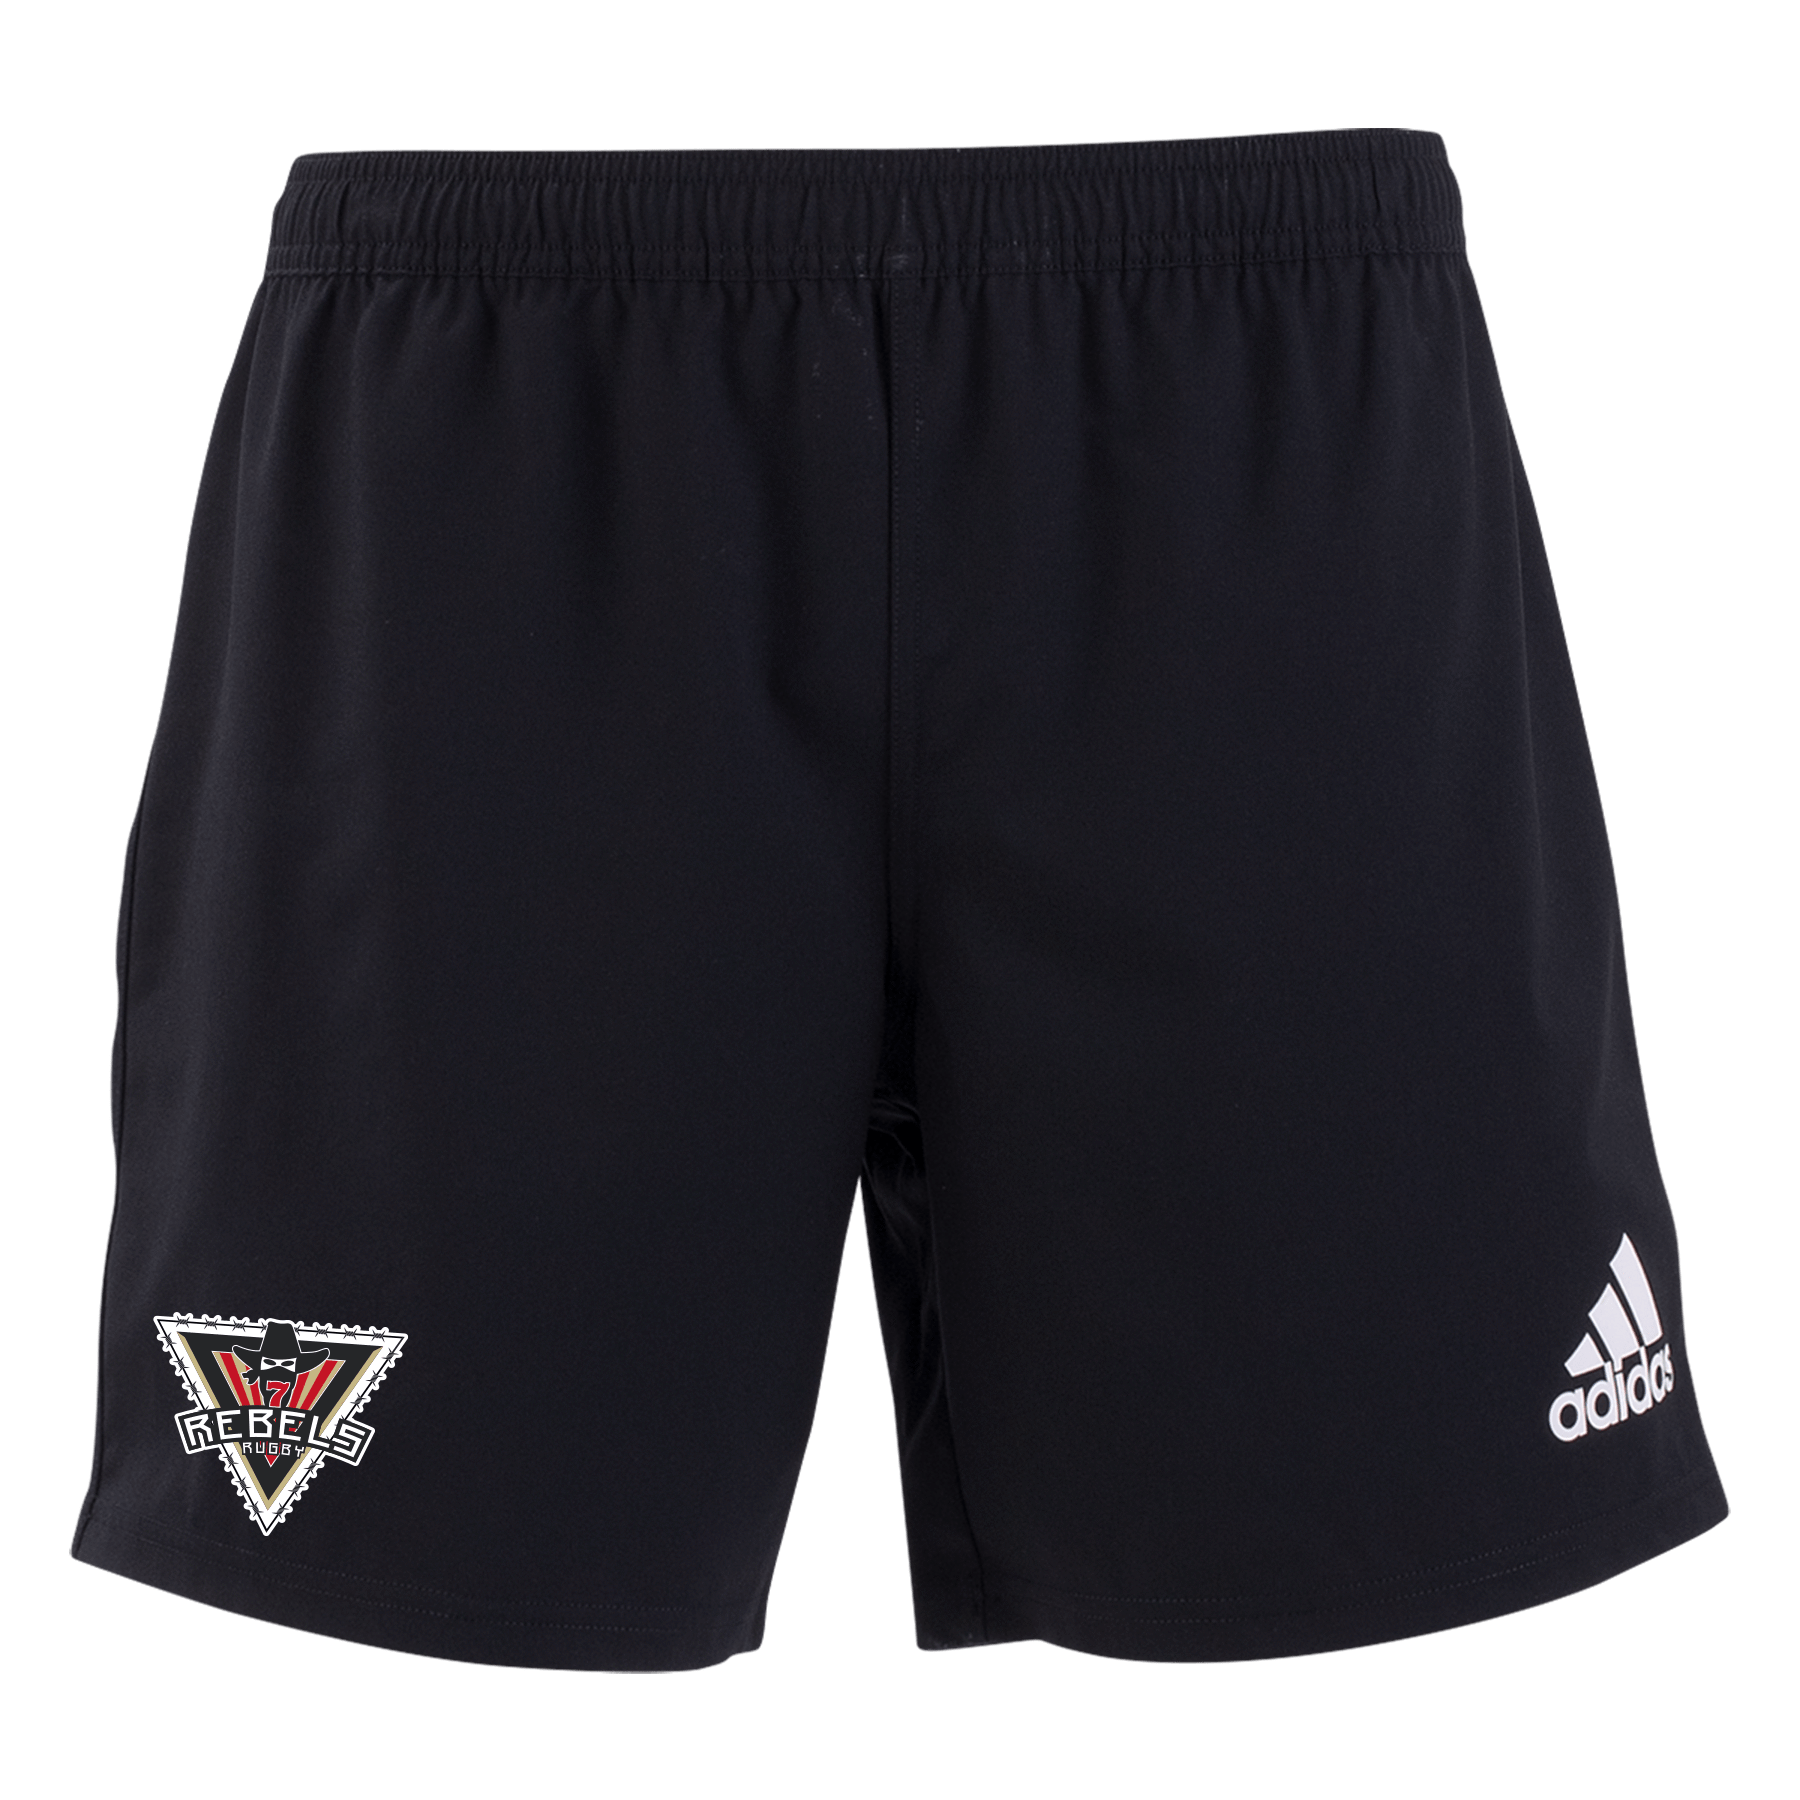 Rebel Rugby Academy adidas 19 Black/White 3 Stripe Shorts